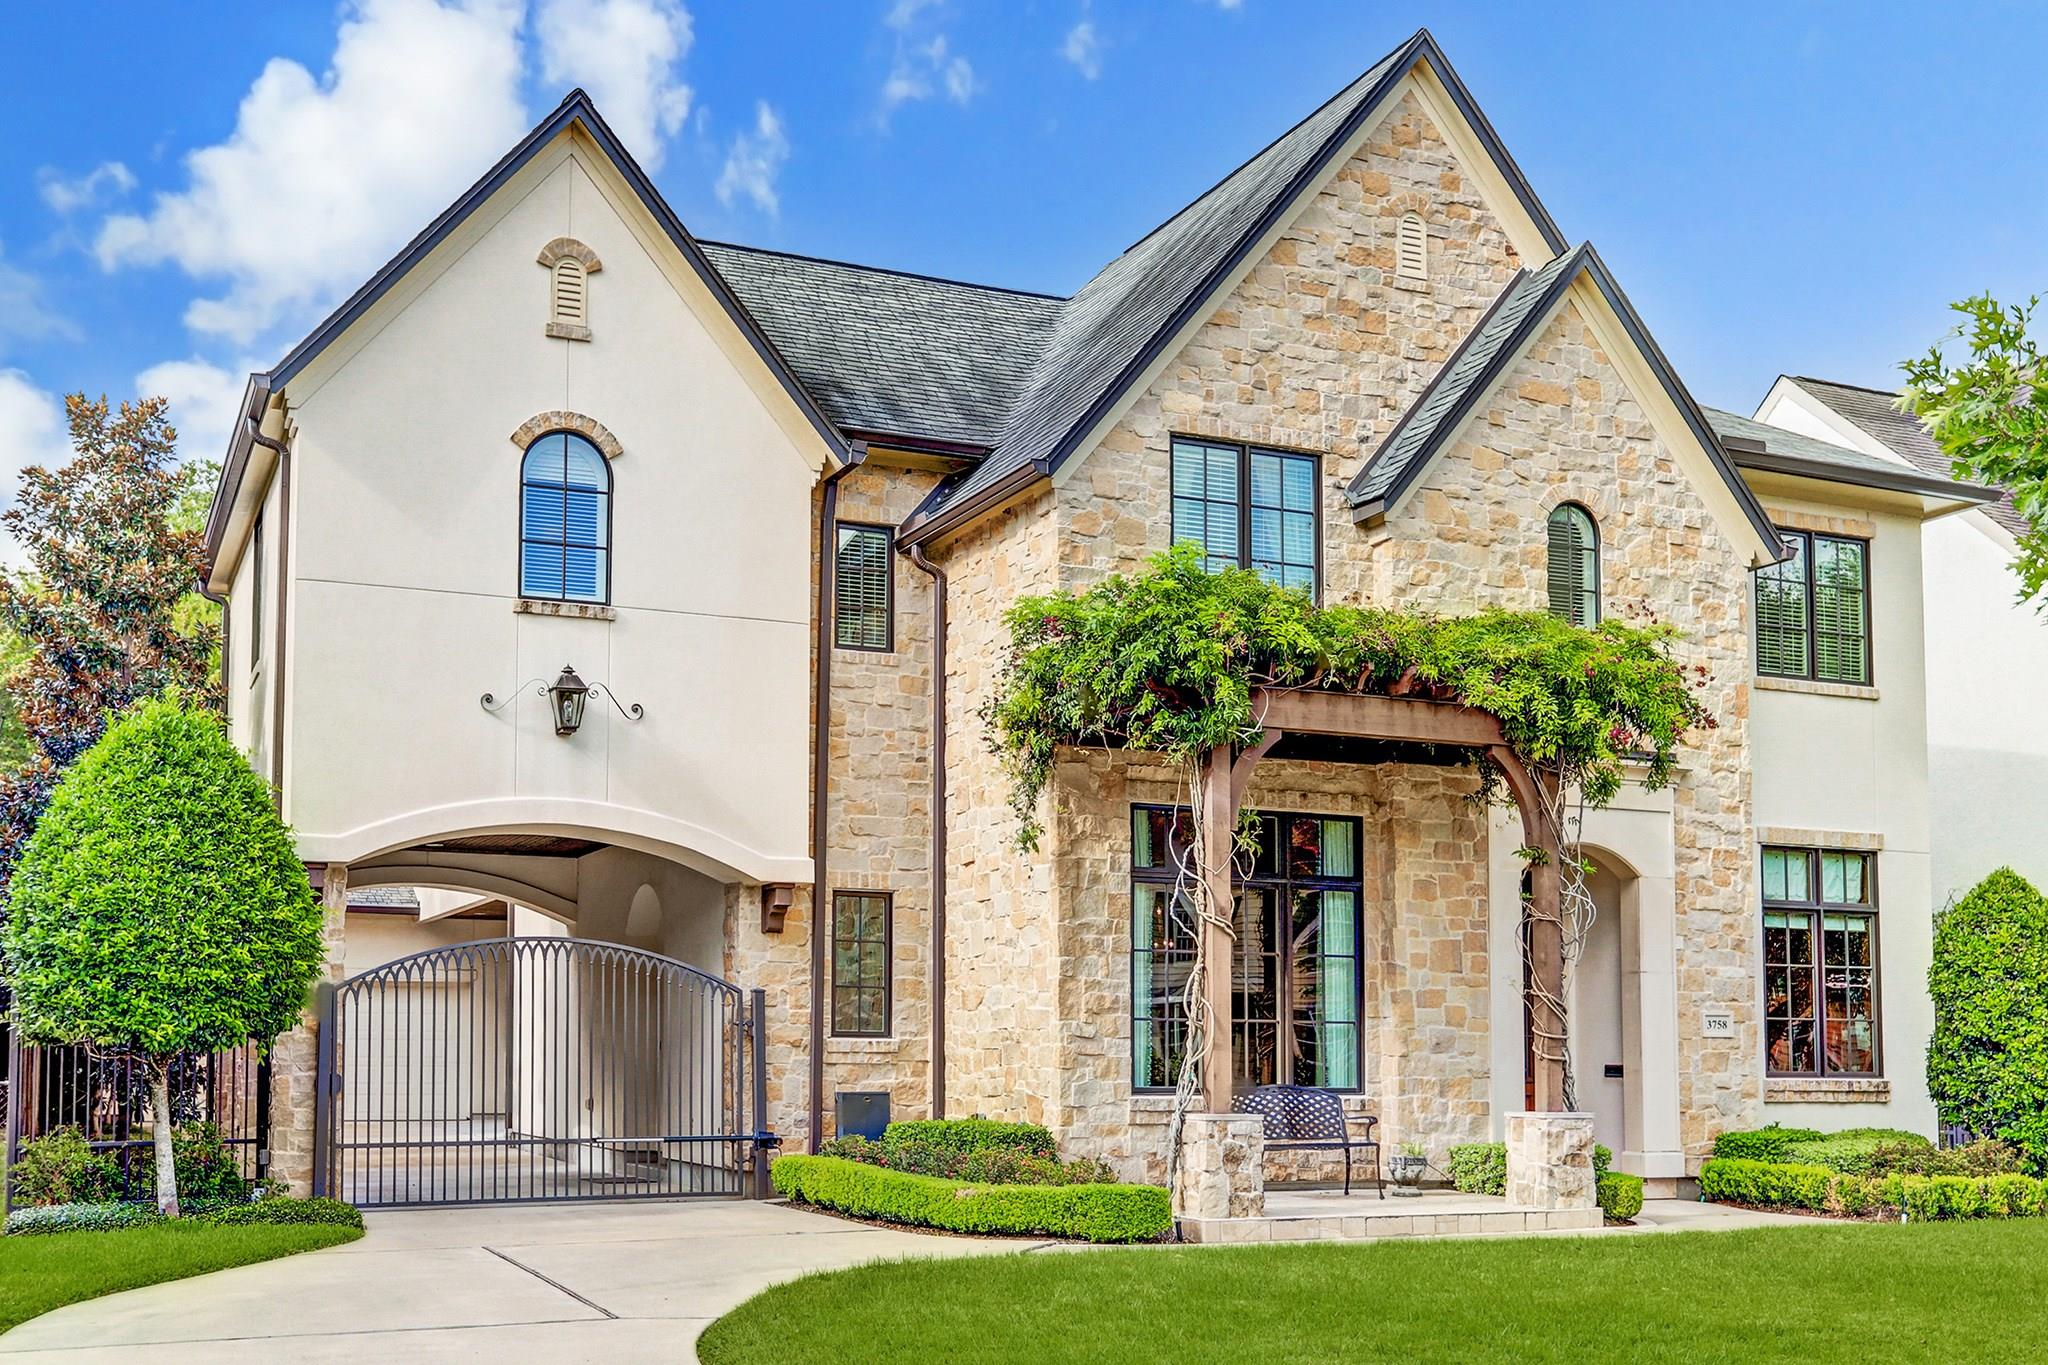 3758 Tangley Property Photo - West University Place, TX real estate listing